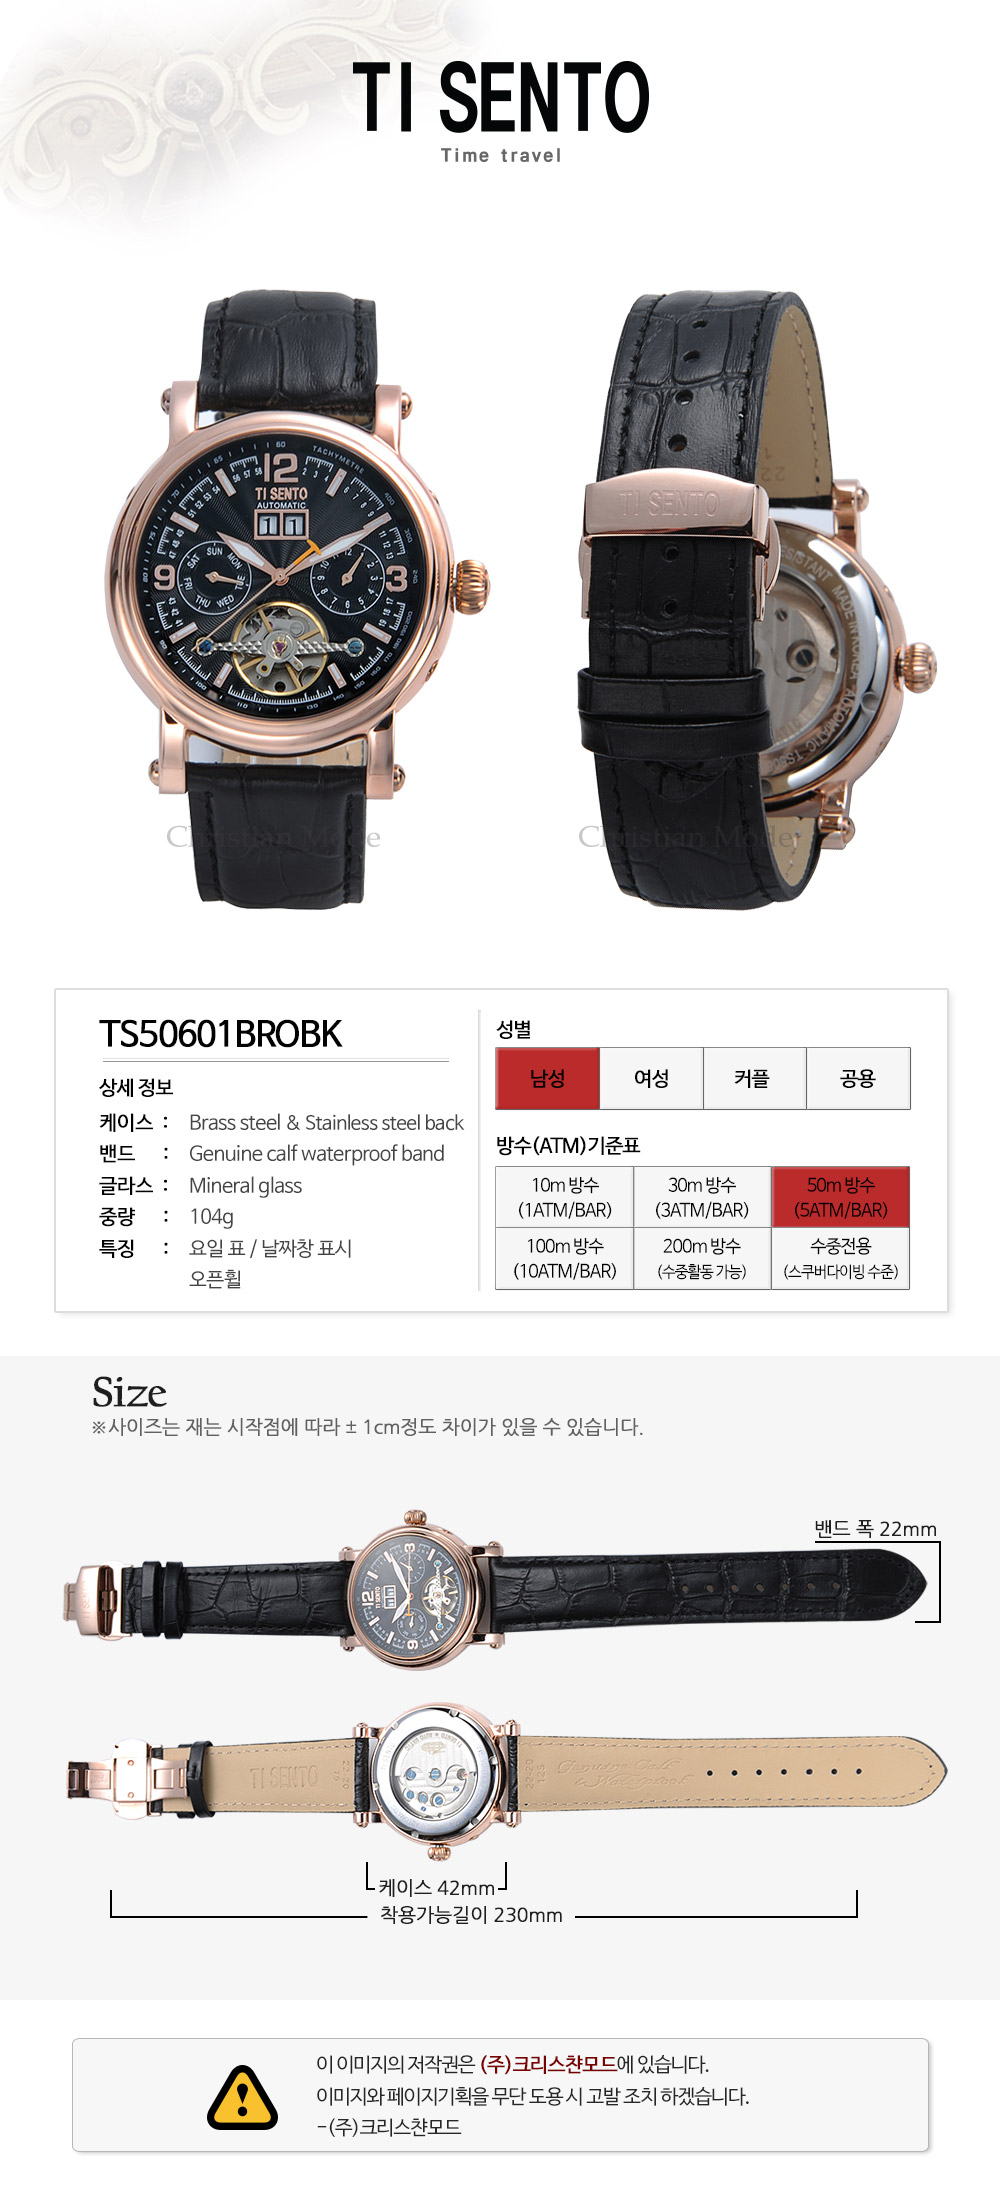 [ TISENTO ] KOREA MADE HIGH QUALITY AUTOMATIC MECHANICAL GENUINE CALF WATERPROOF LEATHER STRAP WATCH TS 50601 BROBK